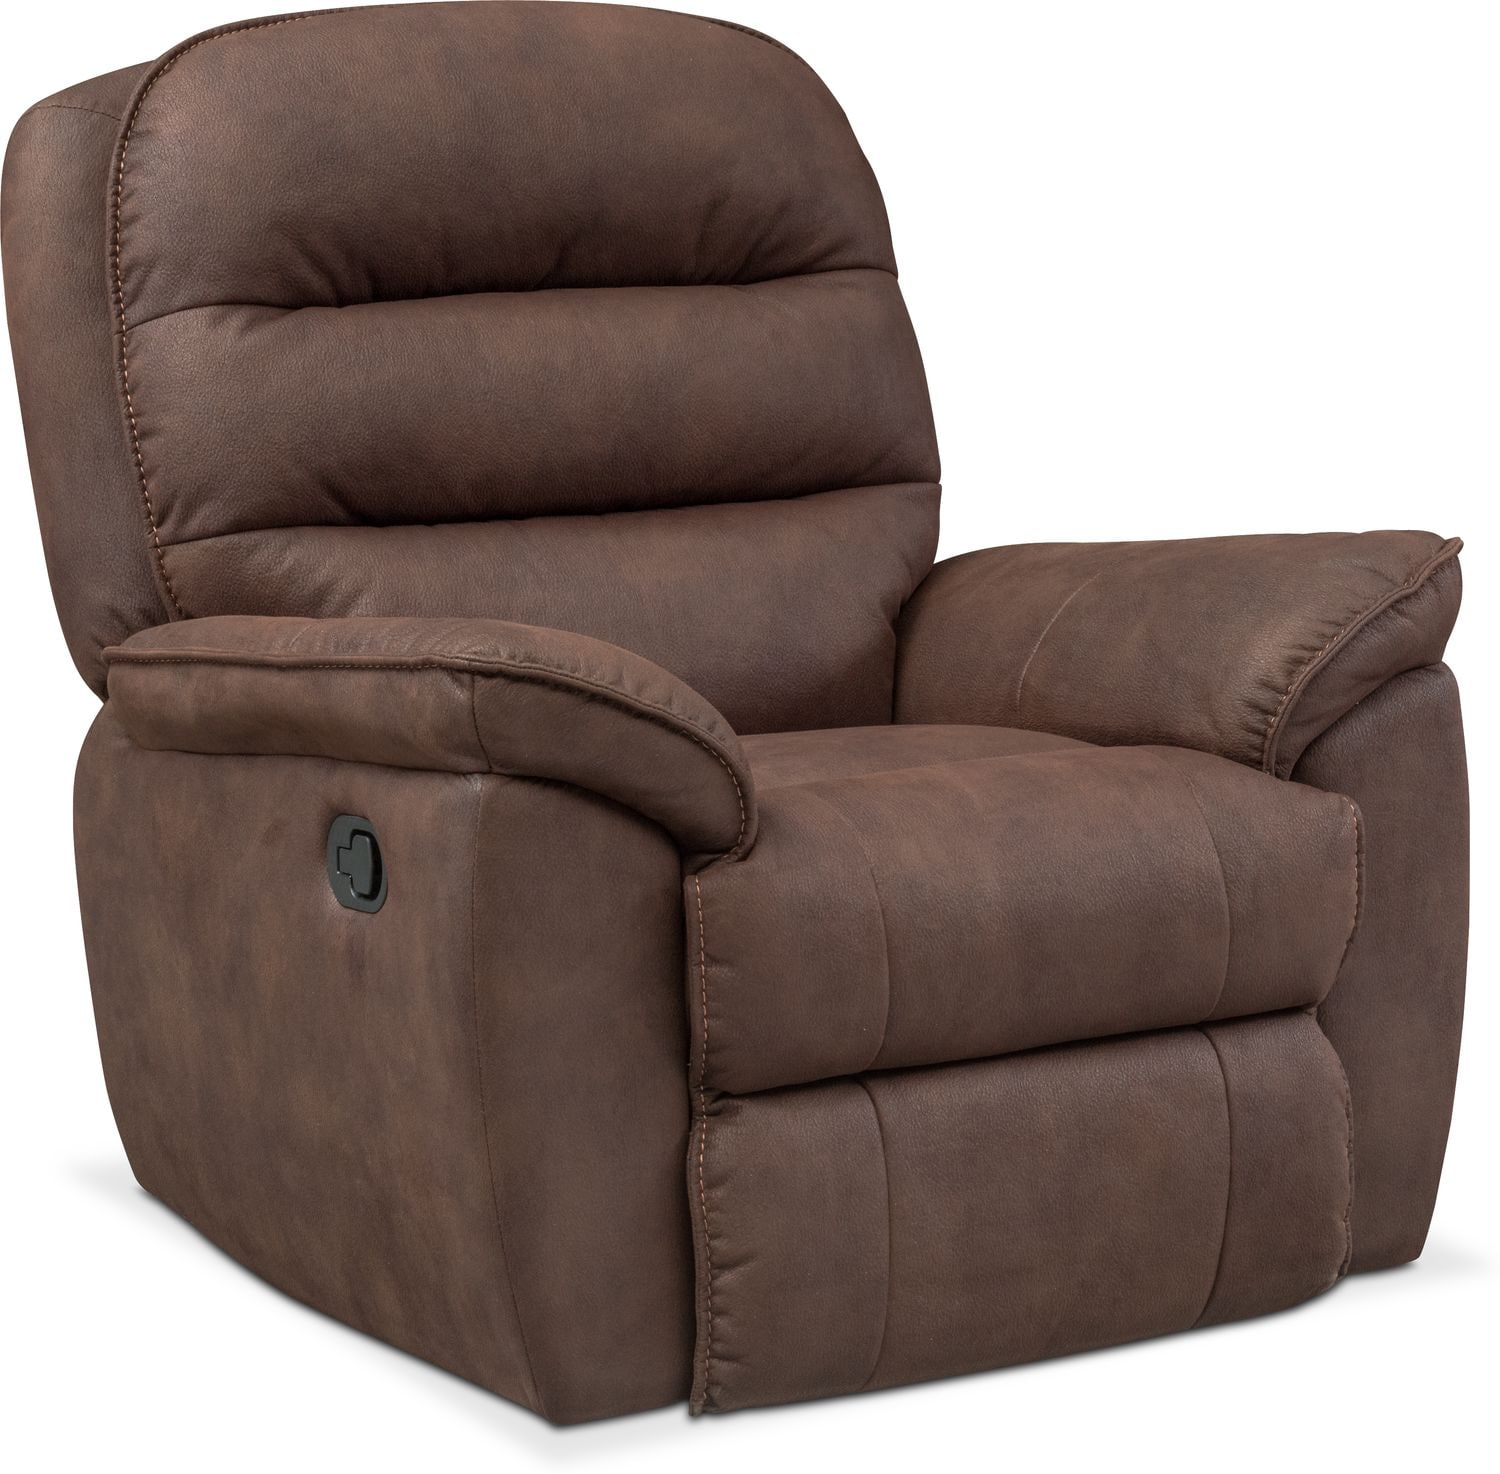 Regis Glider Recliner - Brown  sc 1 st  Value City Furniture & Recliners u0026 Rockers | Value City Furniture | Value City Furniture islam-shia.org